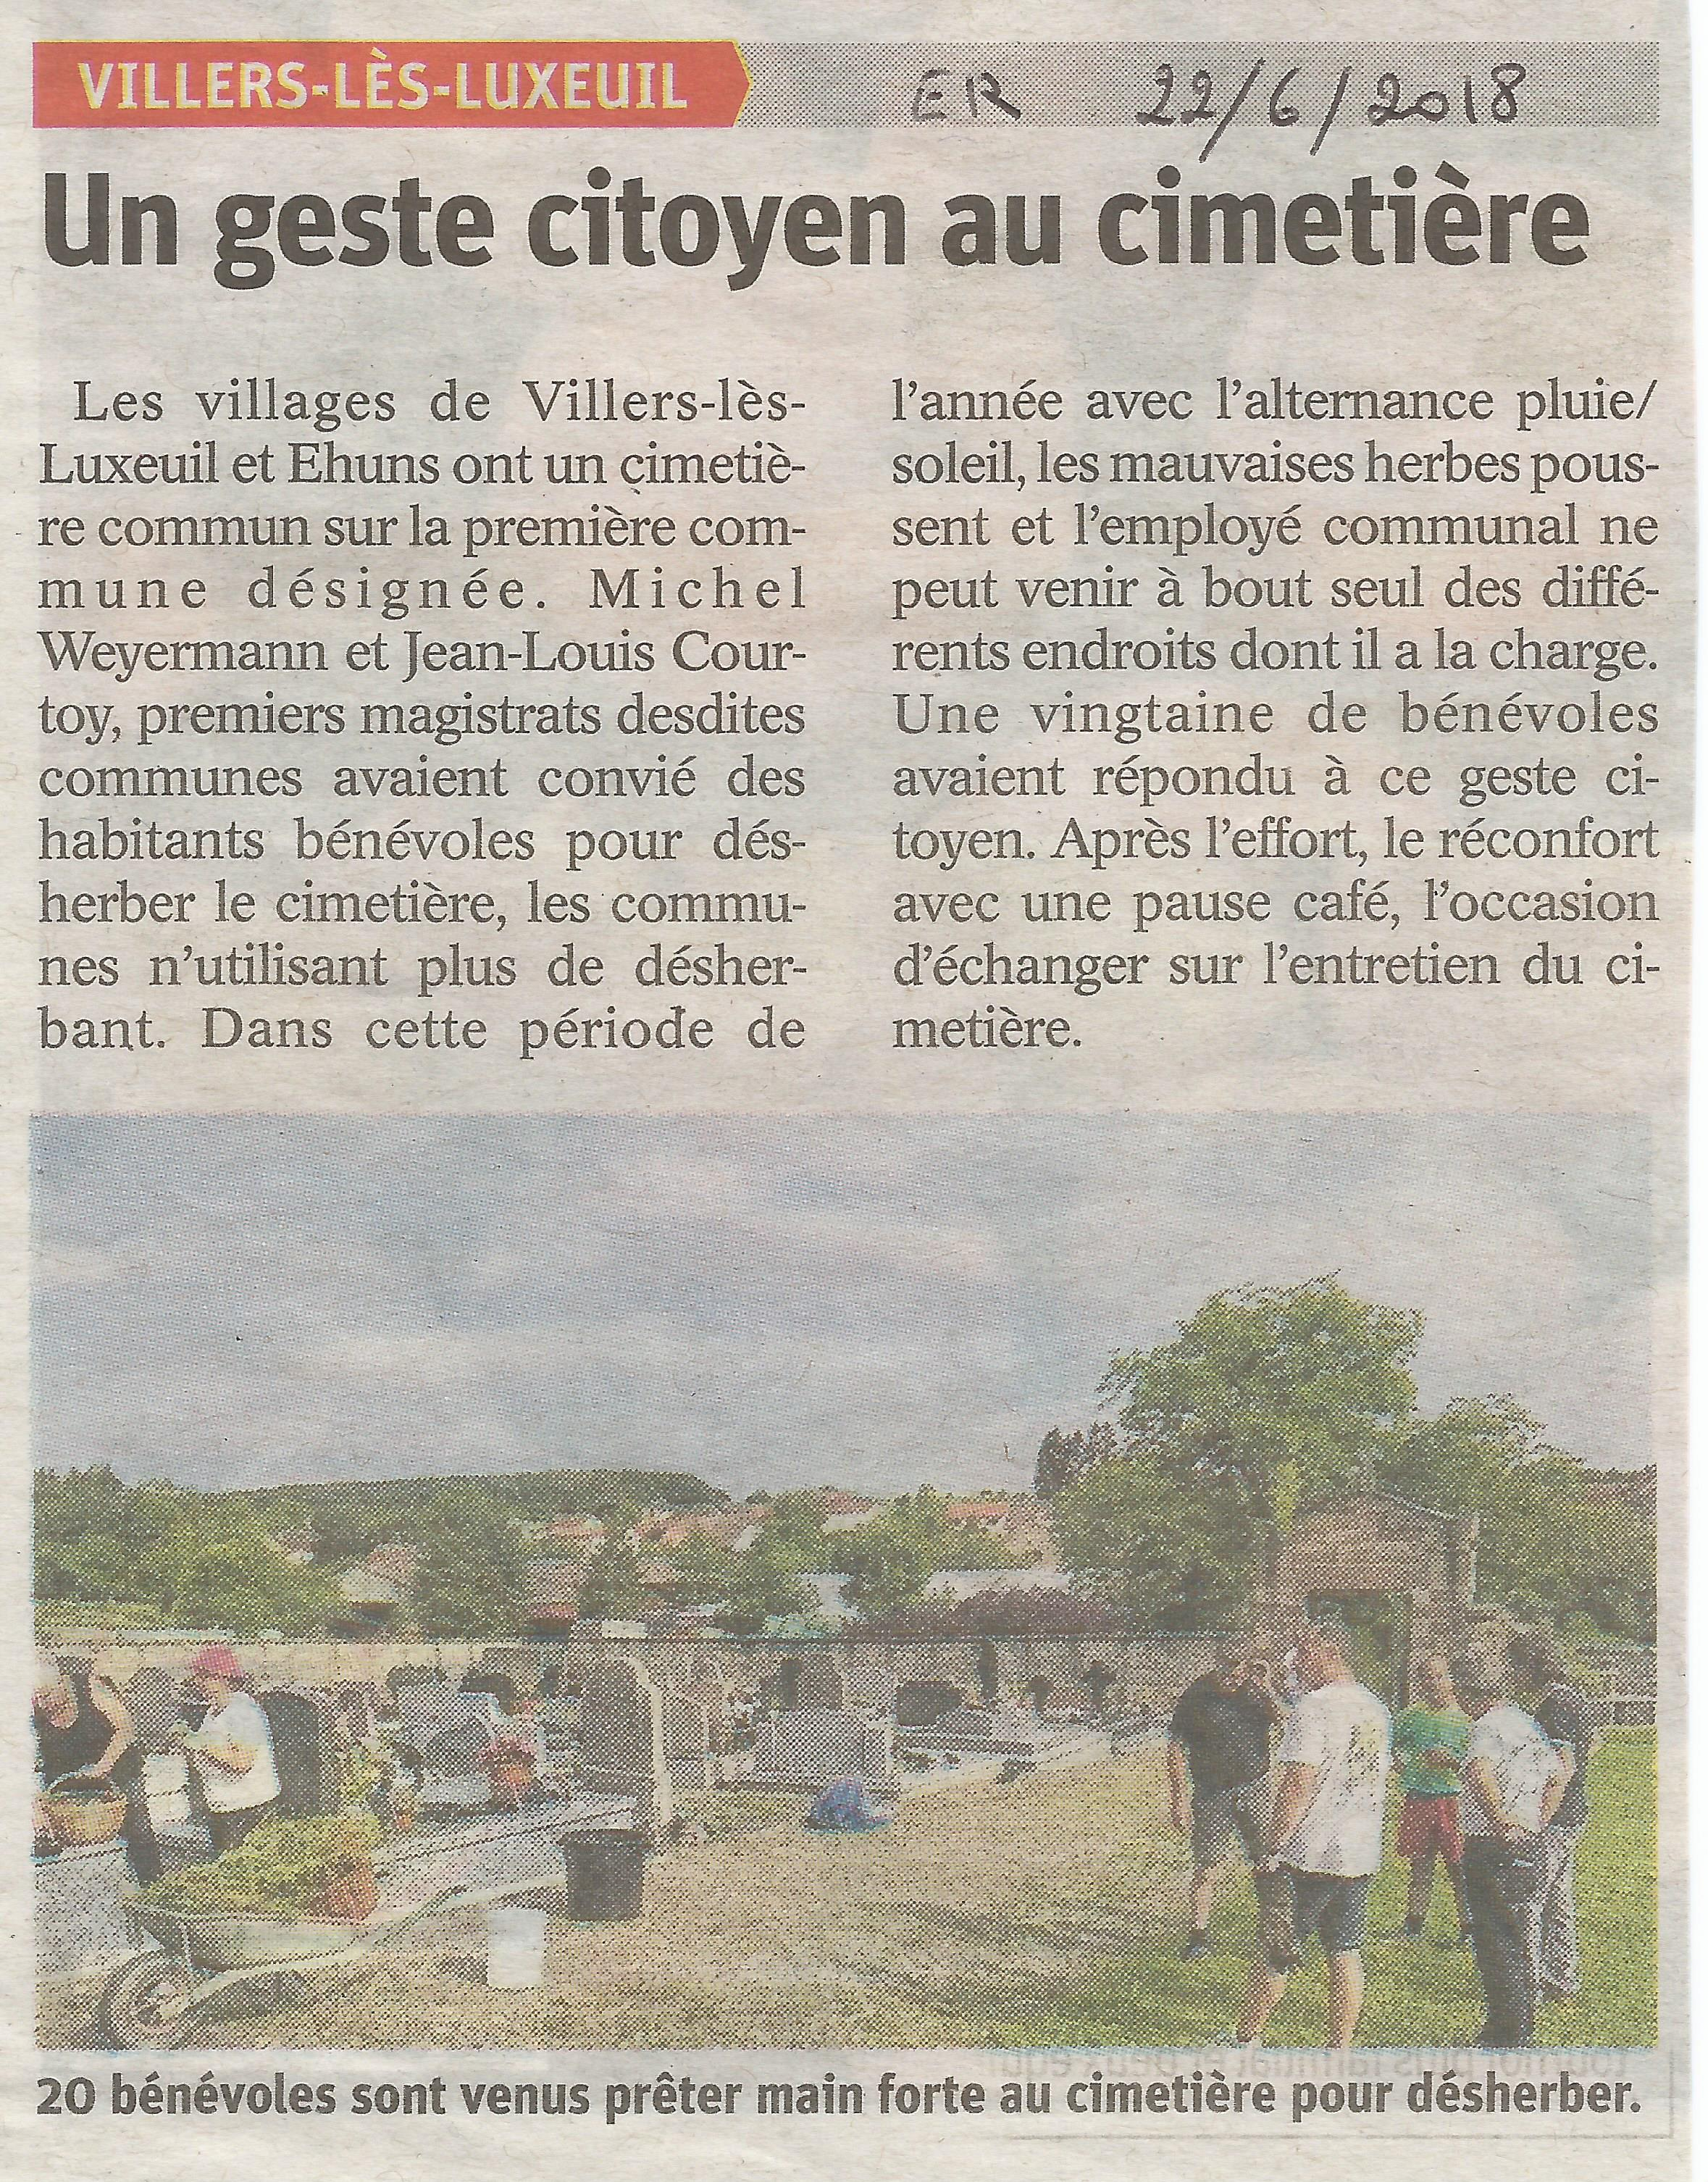 https://www.villers-les-luxeuil.com/projets/villers/files/images/2018_Mairie/Presse/2018_06_22.jpg